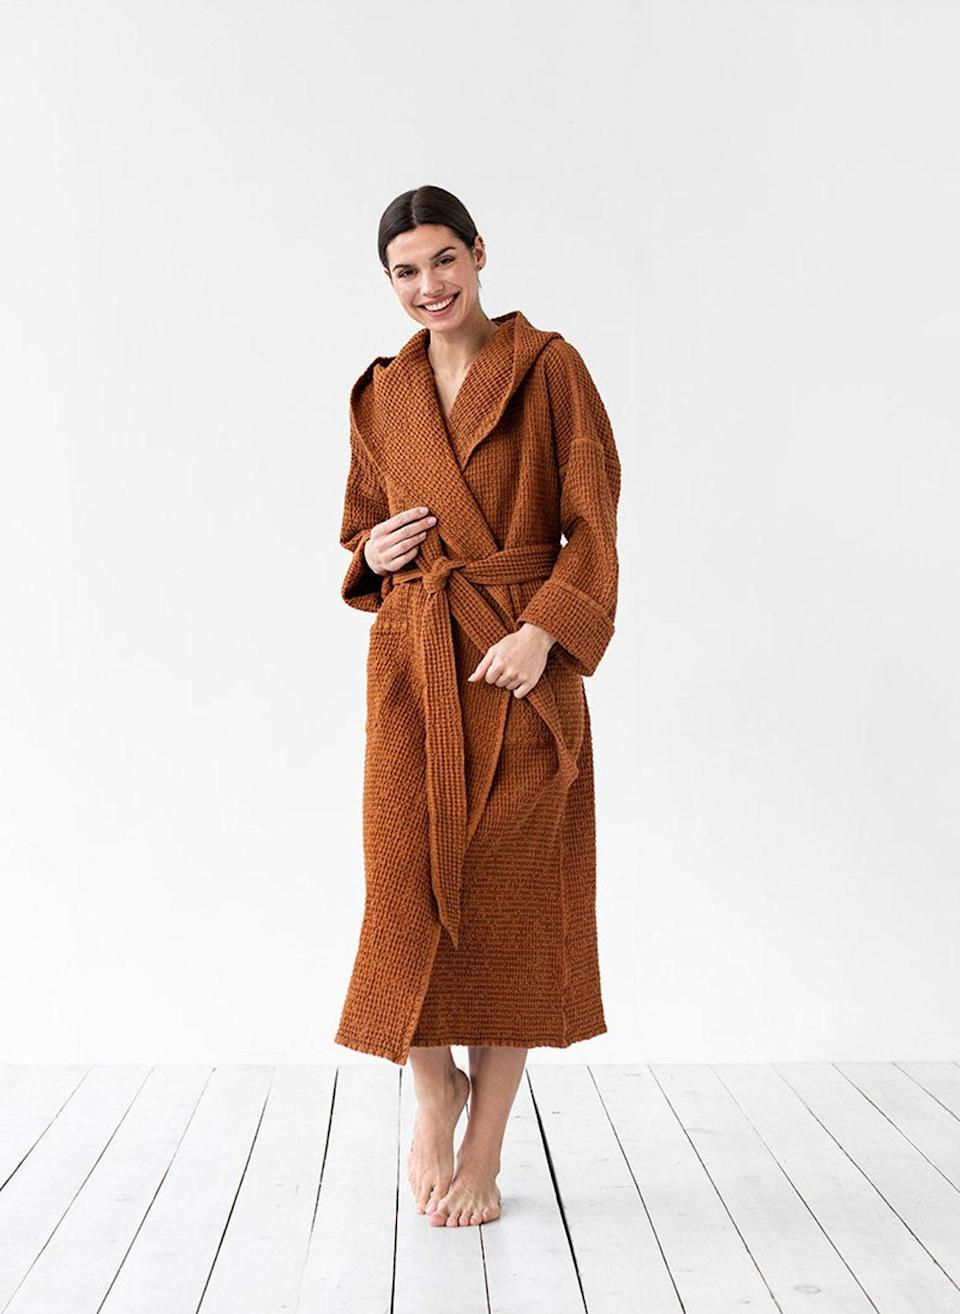 """<h3><h2>MagicLinen Linen Waffle Bathrobe</h2></h3><br>Simple waffle weave meets luxurious stone-washed linen and elopes in glamorous oversized fashion — and here's what the critics are saying: """"It is stunning! It fits perfectly. It is very elegant and comfortable. I highly recommend buying this robe.""""<br><br><strong>MagicLinen</strong> Stonewashed Linen Waffle Bathrobe, $, available at <a href=""""https://go.skimresources.com/?id=30283X879131&url=https%3A%2F%2Fwww.etsy.com%2Flisting%2F696119483%2Fwomens-waffle-linen-bath-robe-unisex"""" rel=""""nofollow noopener"""" target=""""_blank"""" data-ylk=""""slk:Etsy"""" class=""""link rapid-noclick-resp"""">Etsy</a>"""